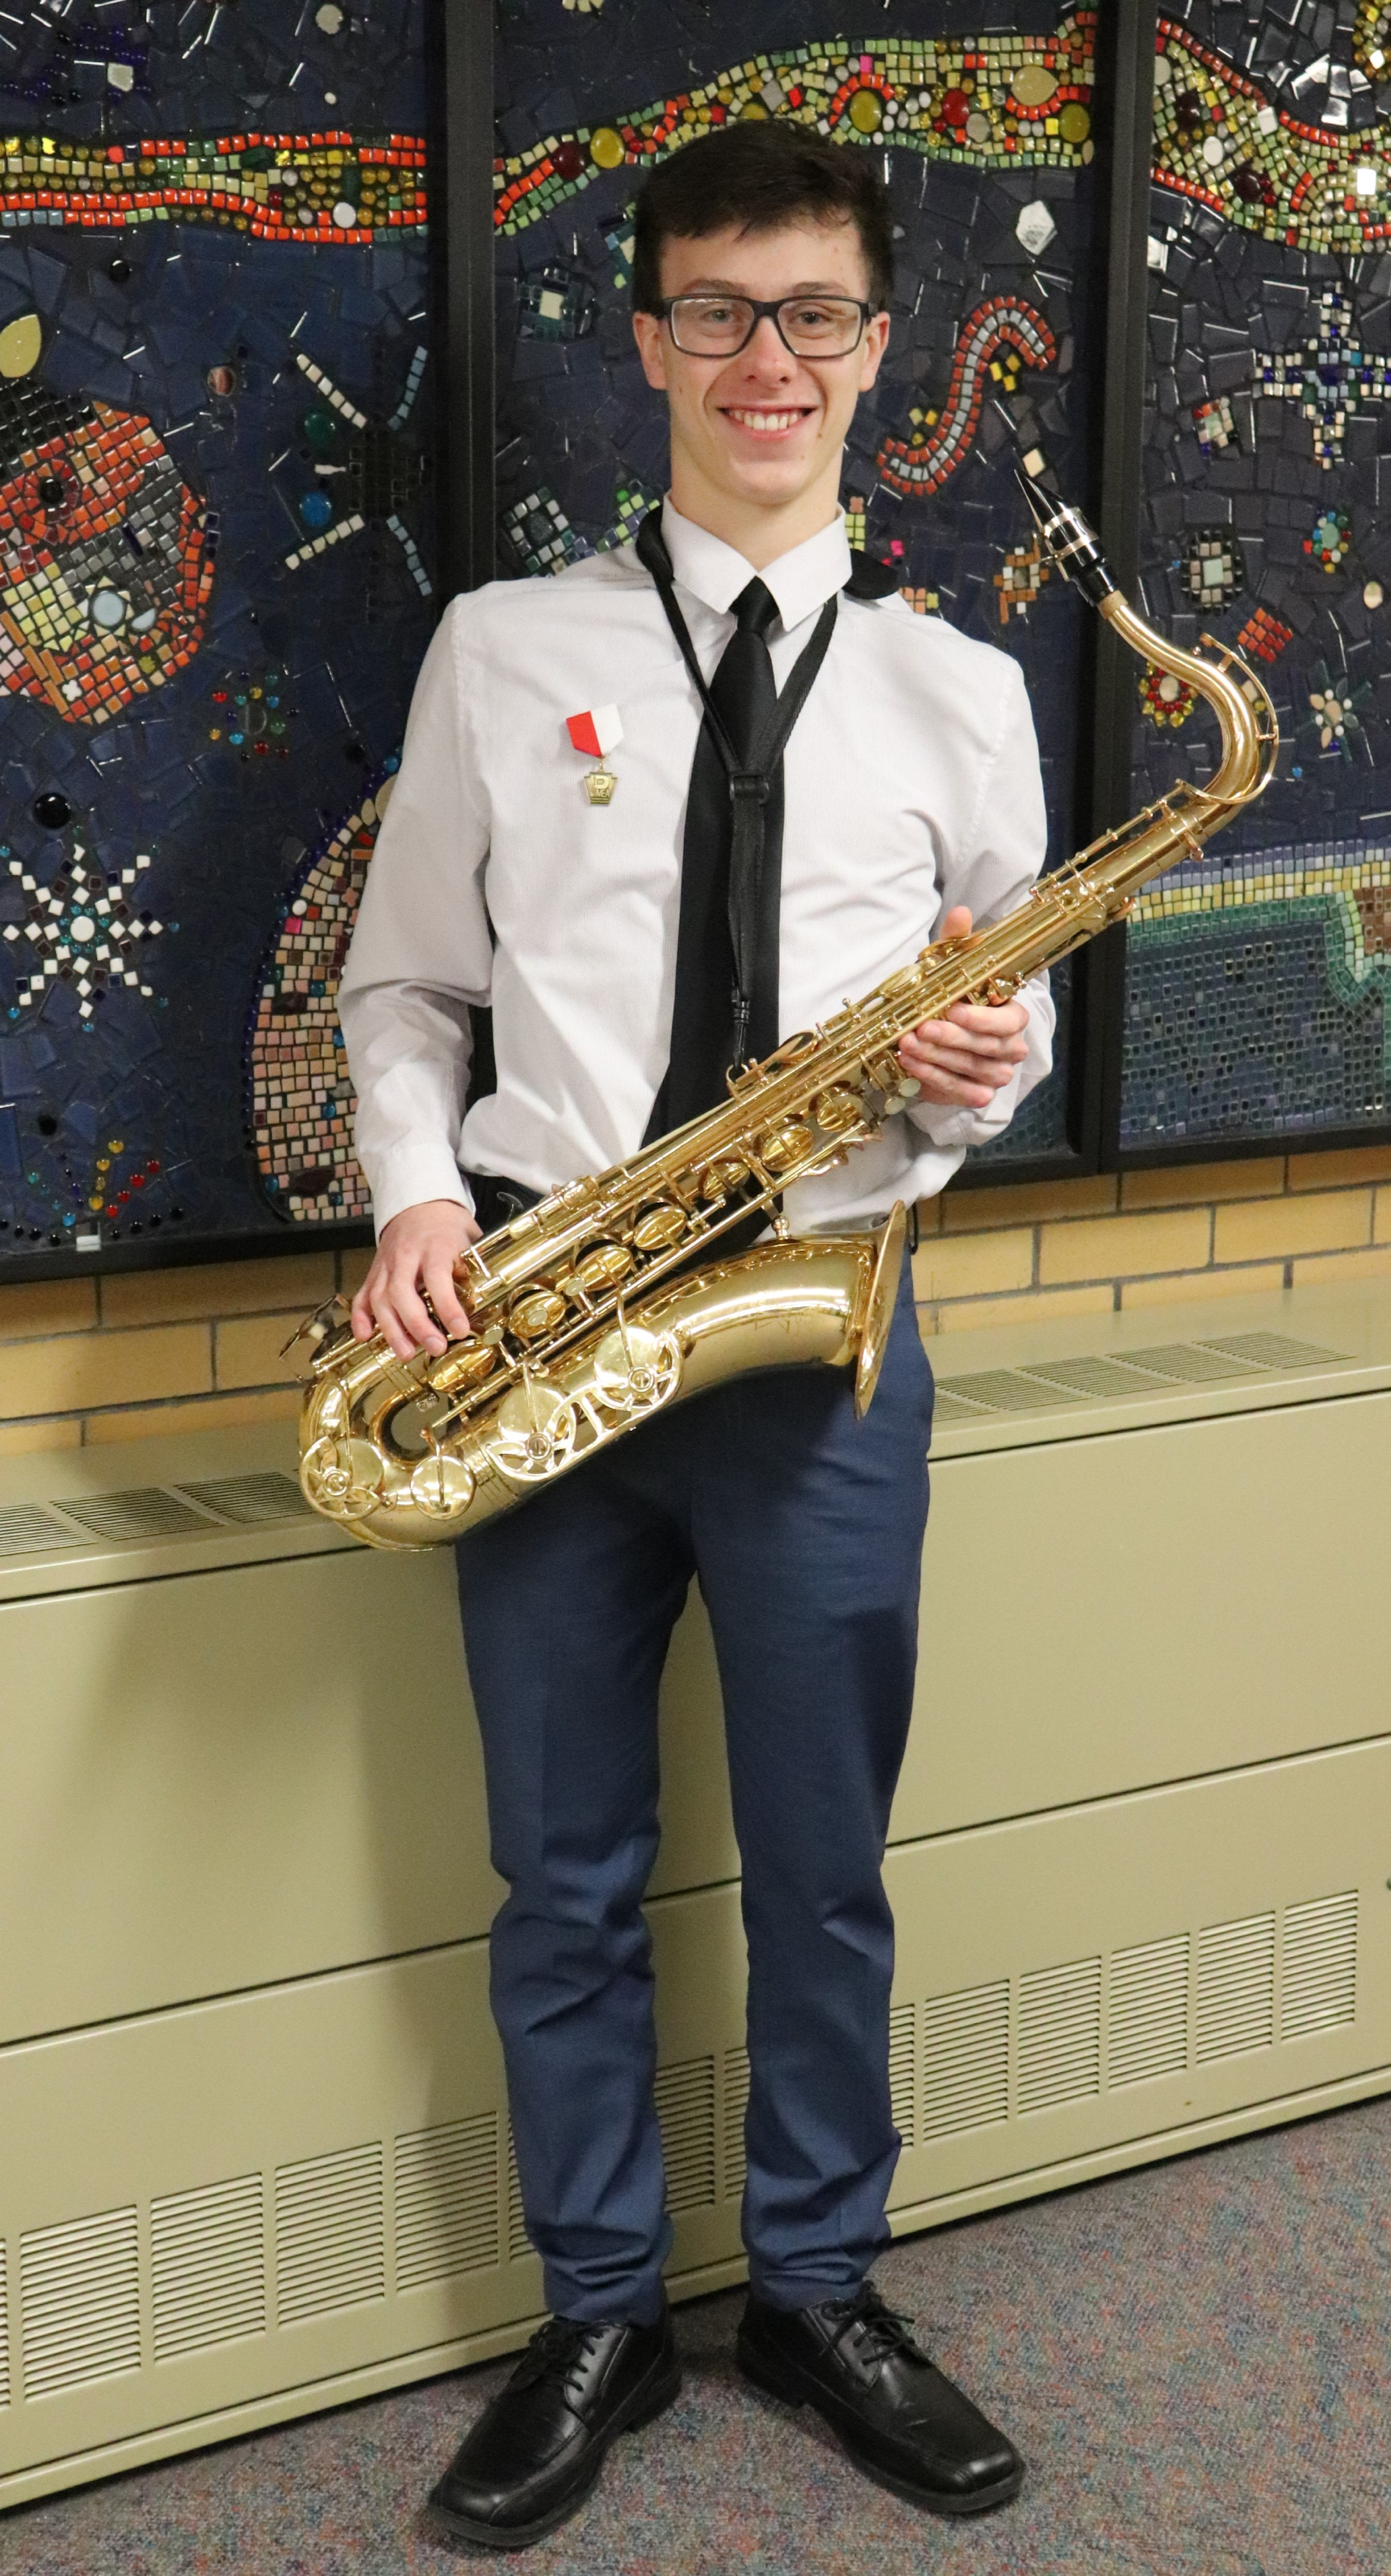 Gabe performed for the PMEA District 6 Jazz band